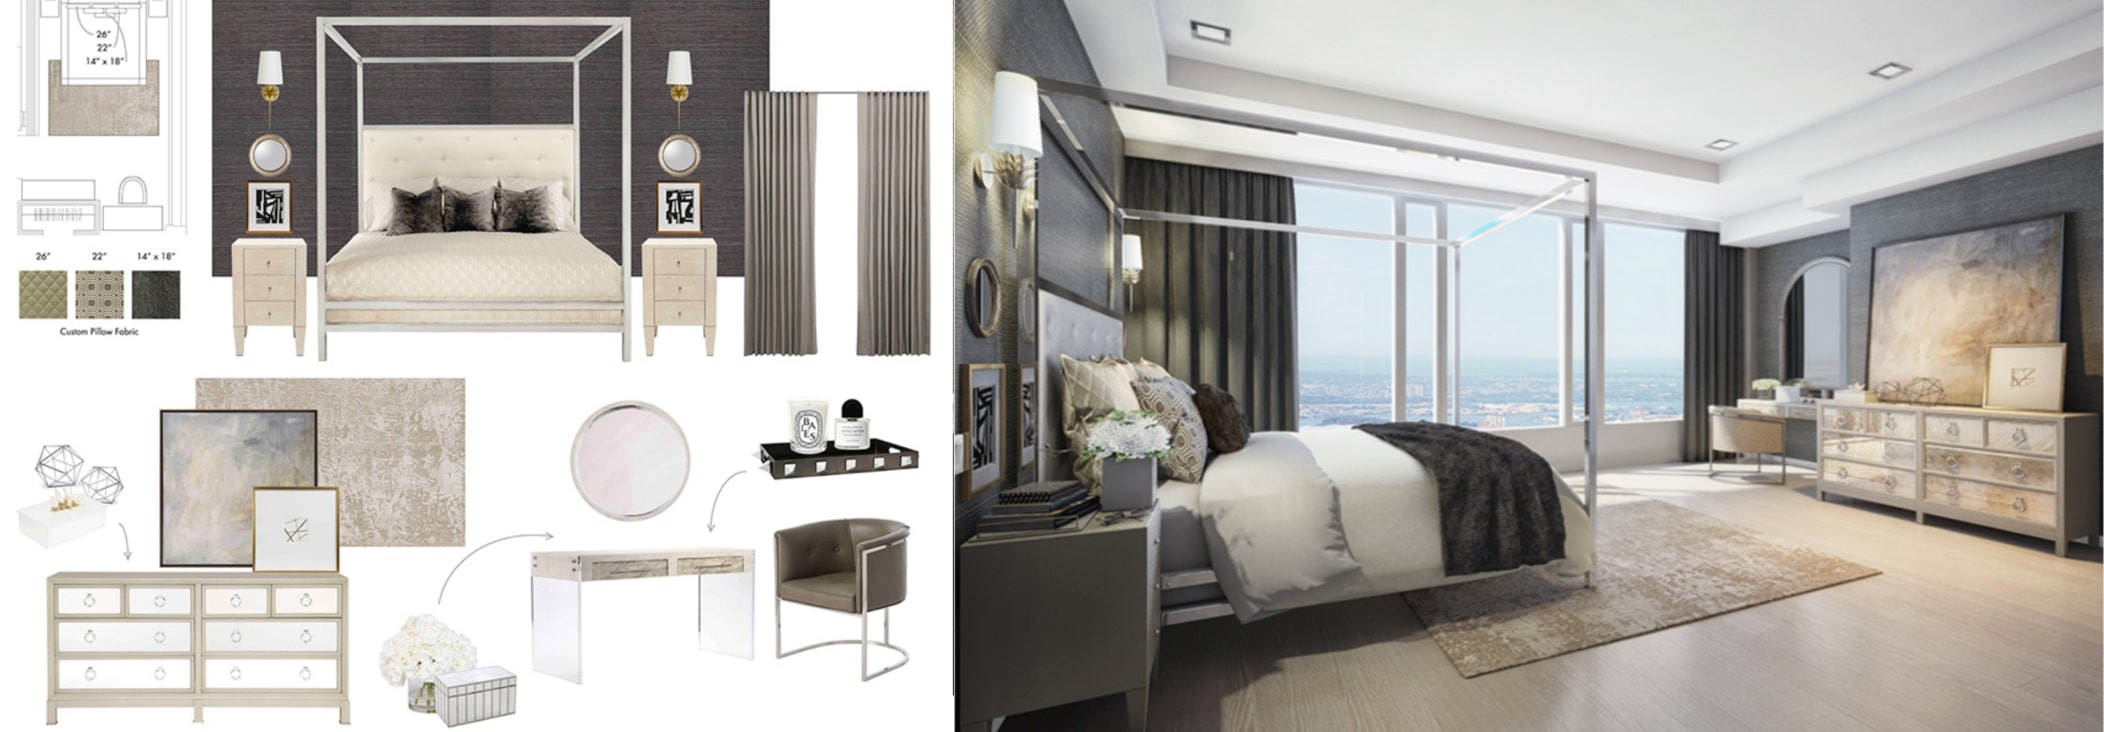 kathy kuo bedroom design schematic